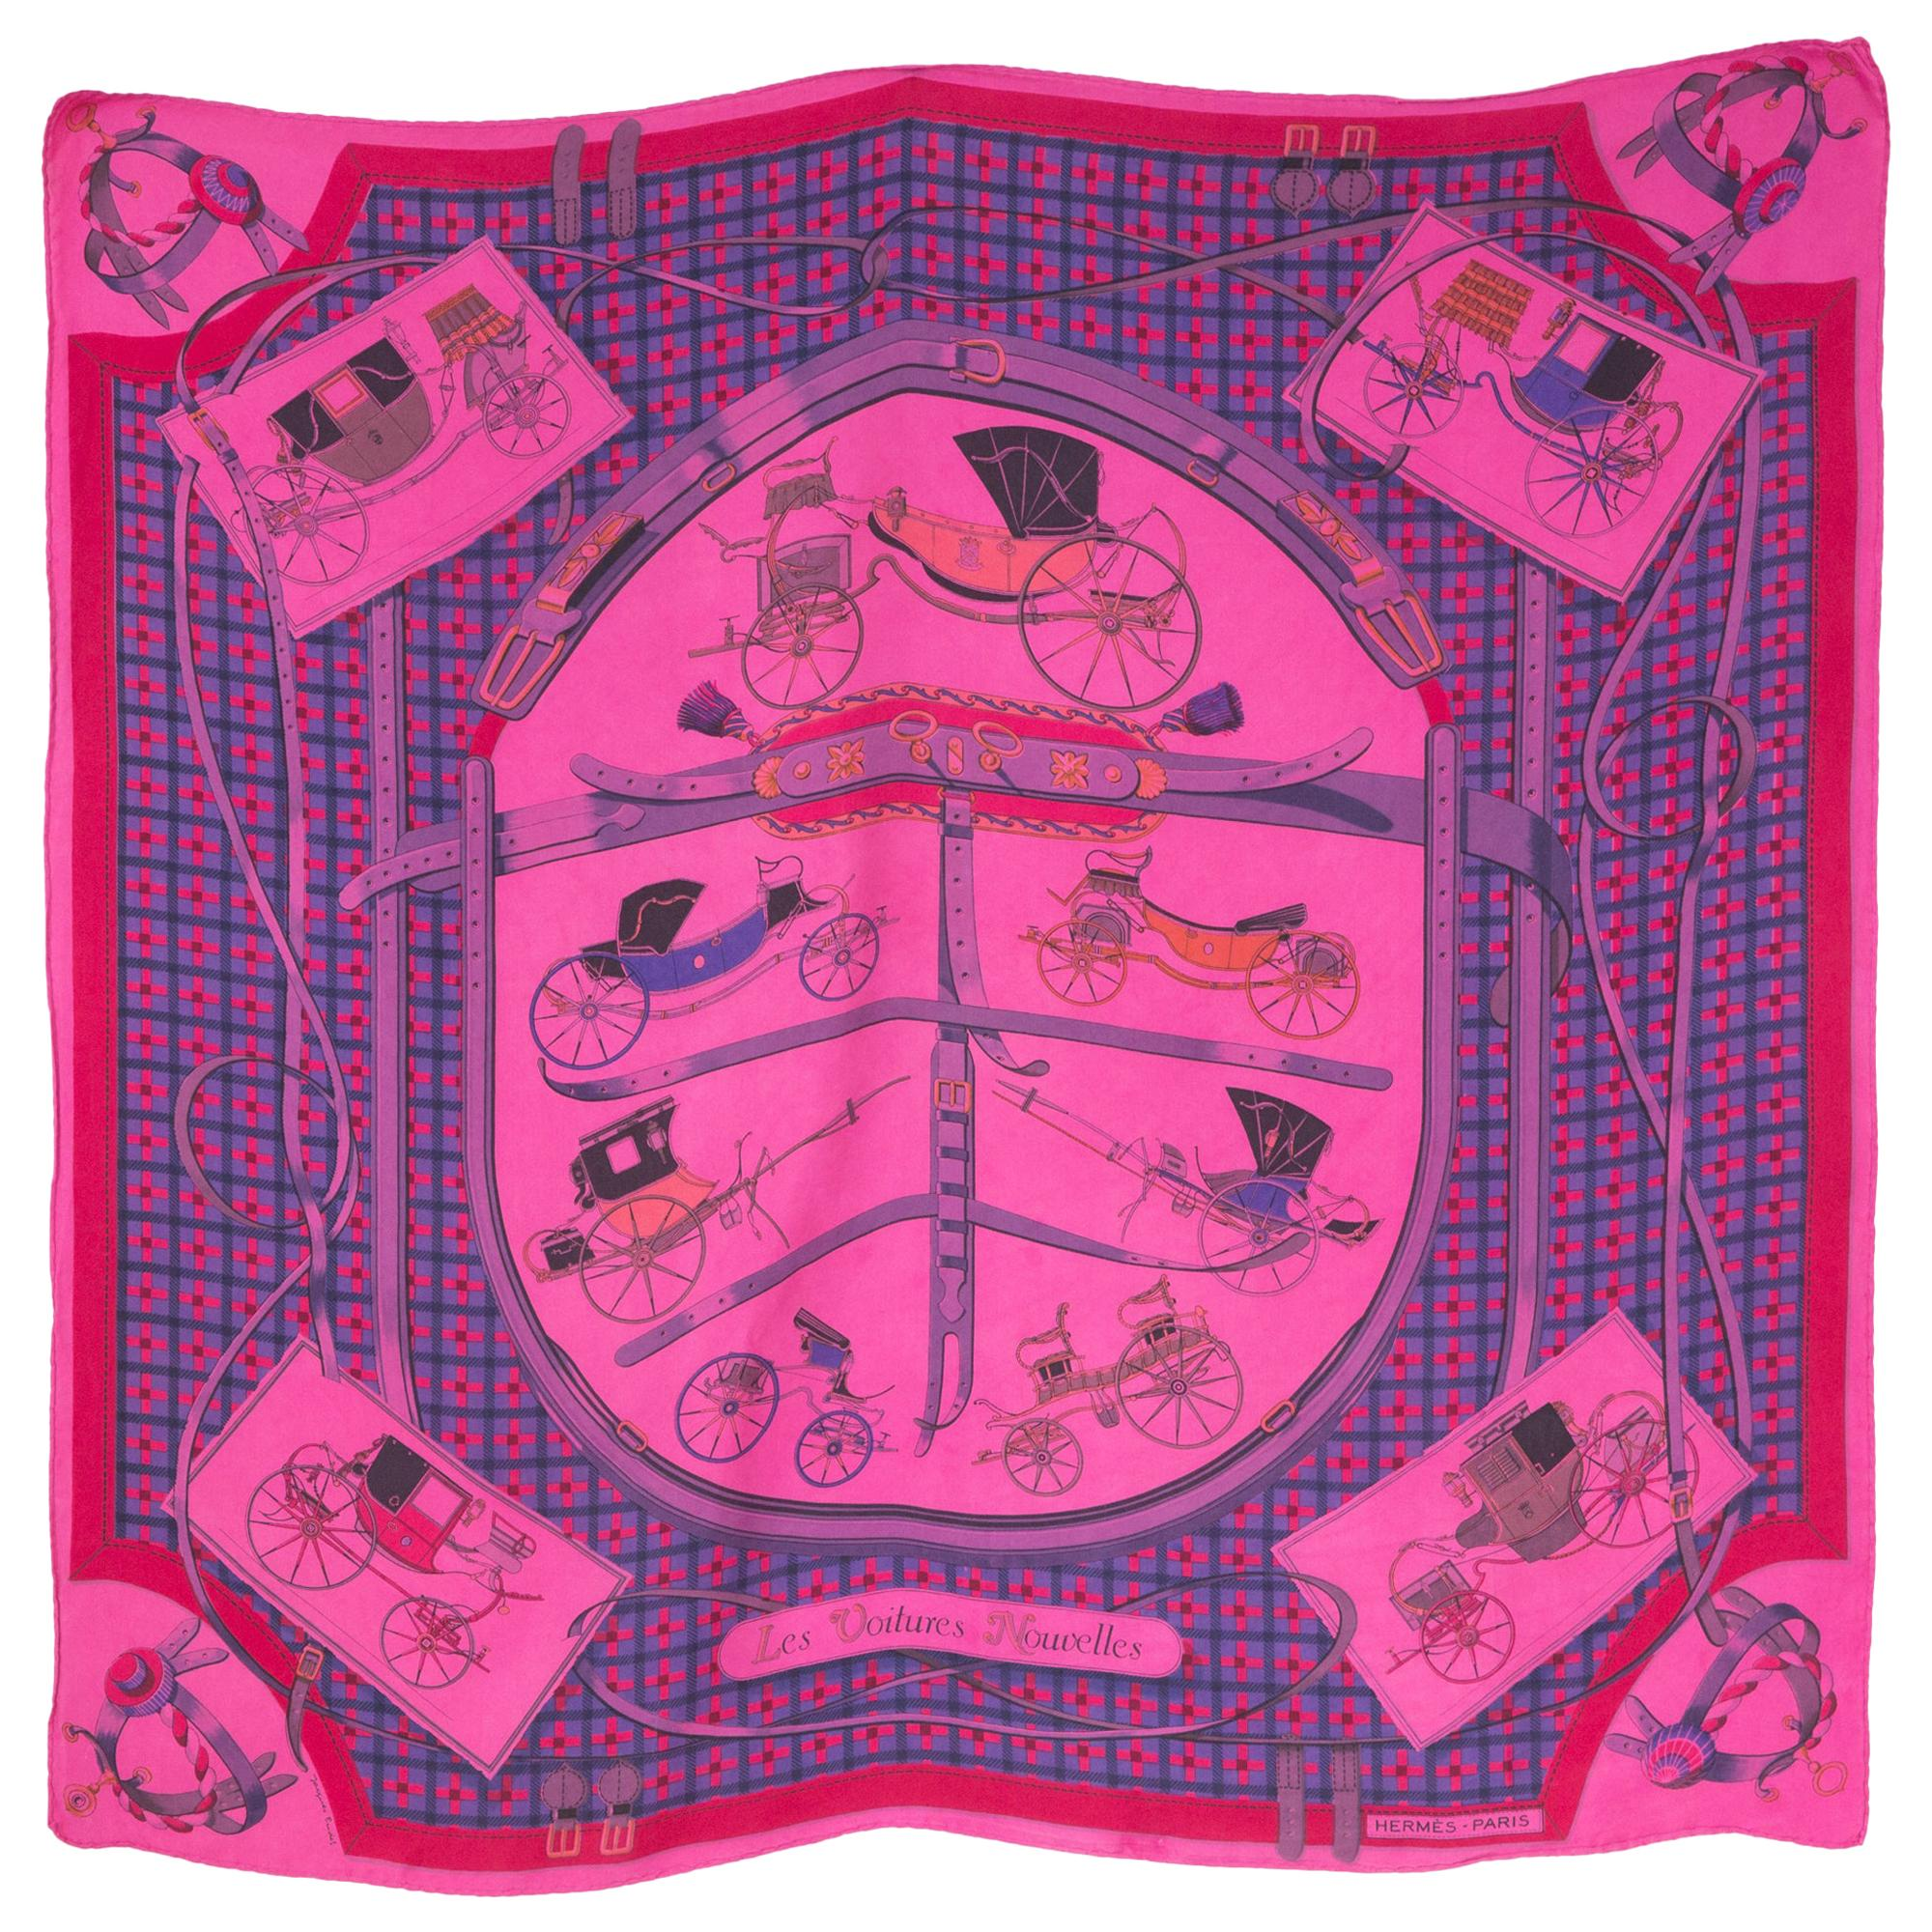 Hermes Pink Overdyed Les Voitures Nouvelles by Jacques Eudel Silk Scarf